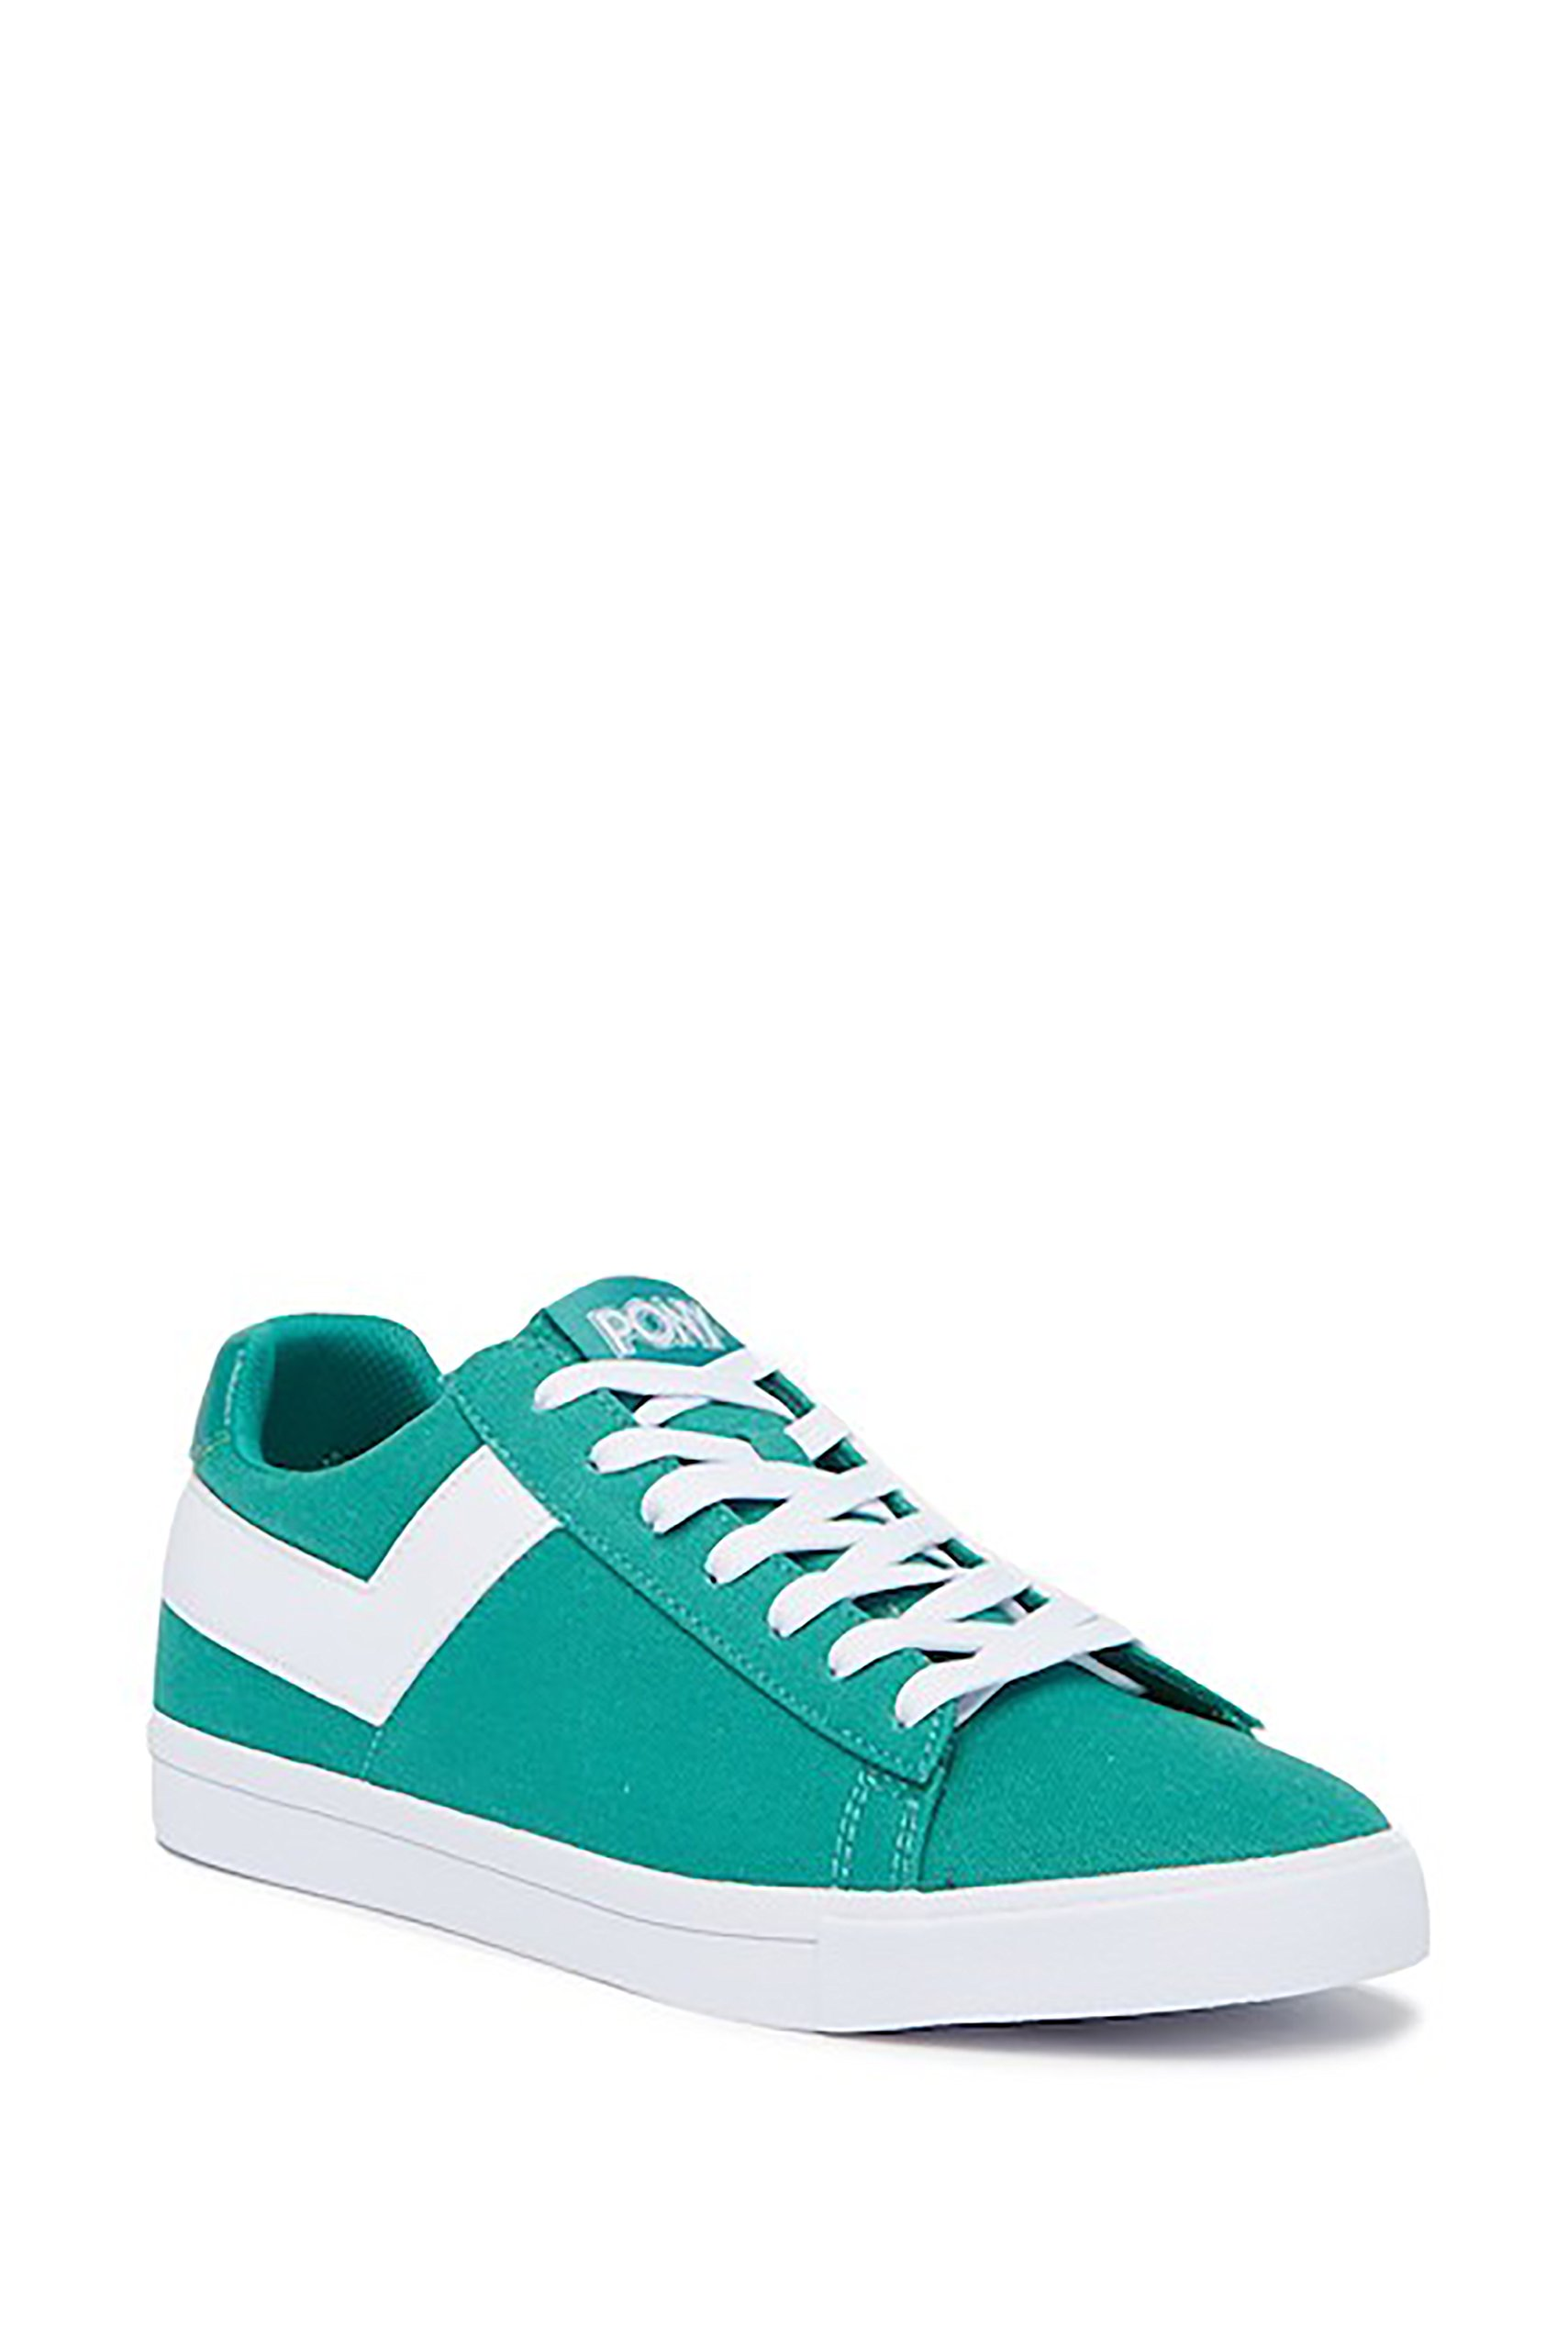 Pony TOP Star LO CORE Womens Canvas Low Top Lace up Fashion Sneakers (10 US, Aqua White)